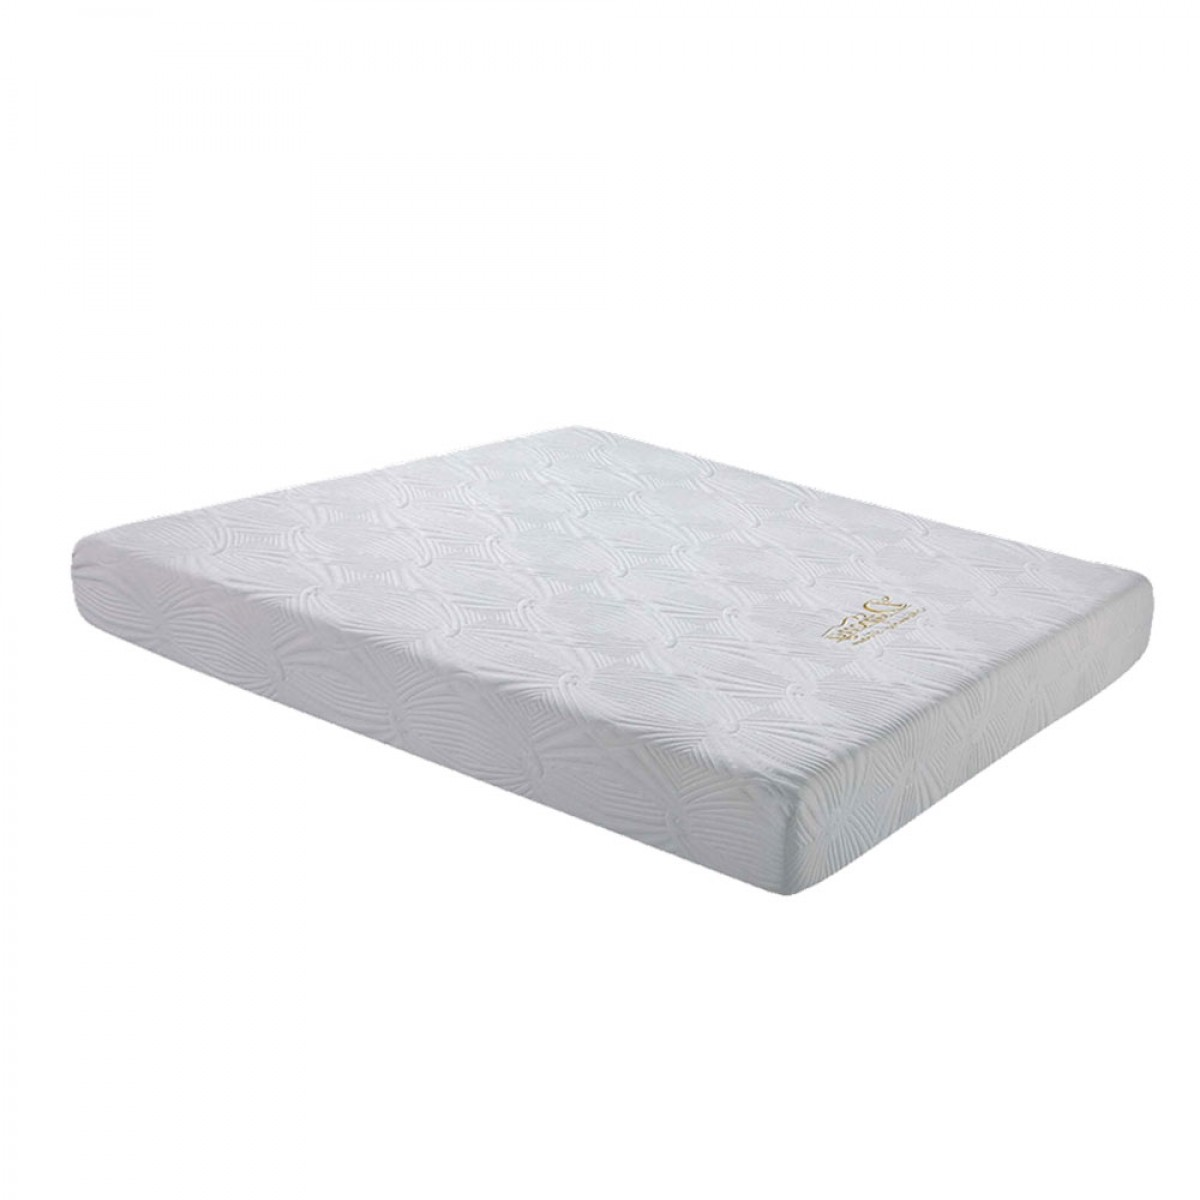 Double Star Furniture Memory Foam Double Mattress